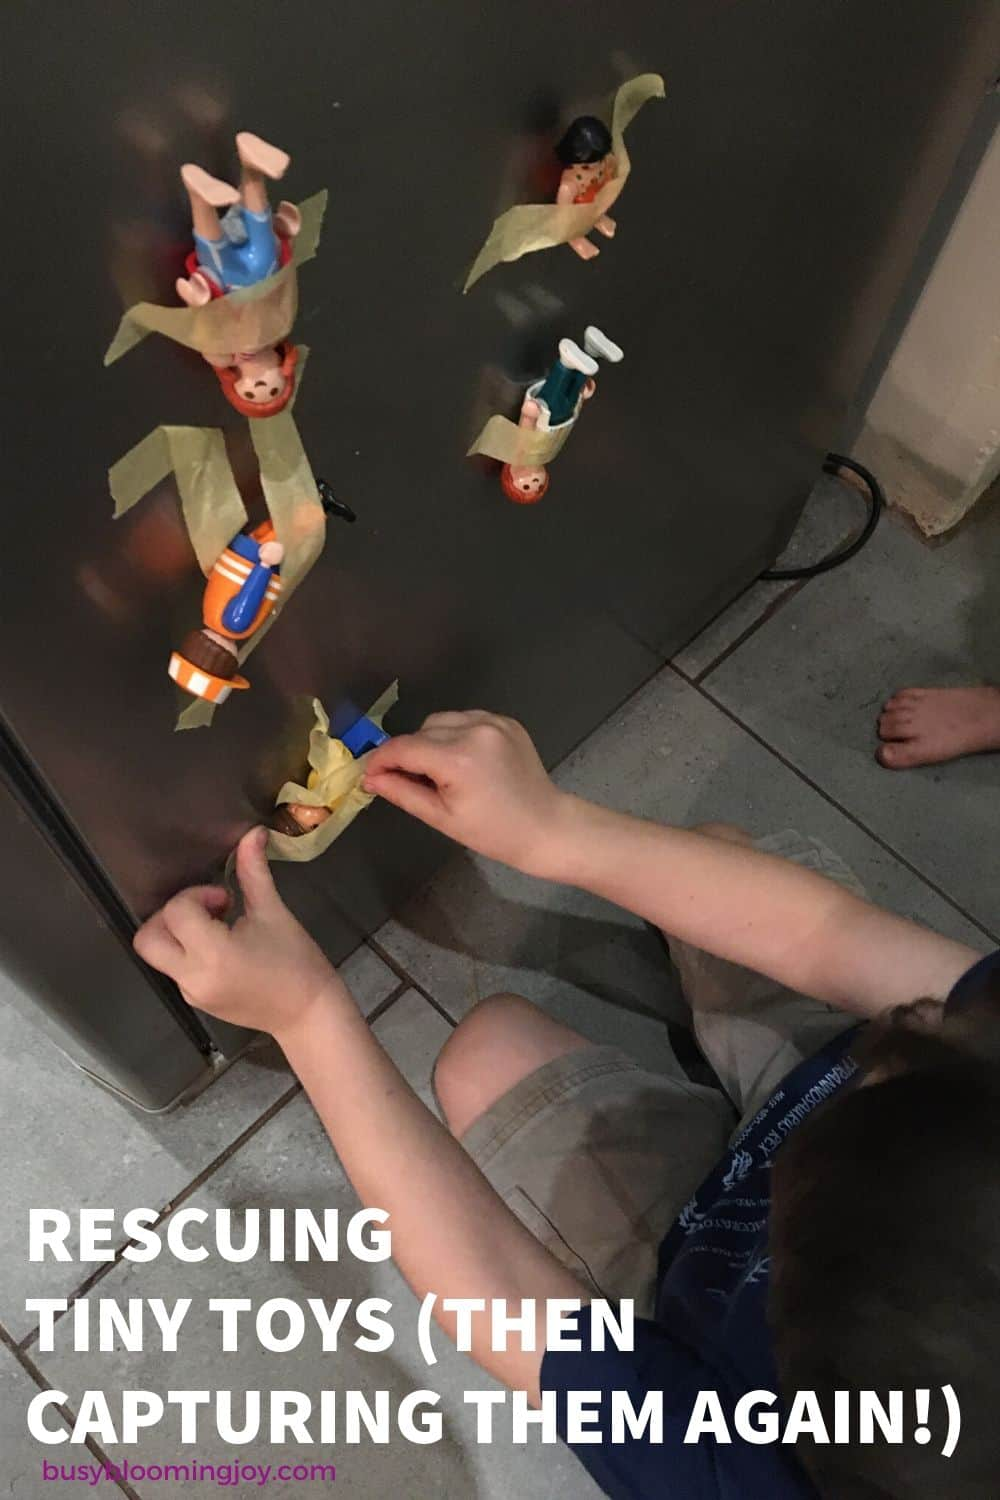 rescuing taped toys - super easy at home toddler activity